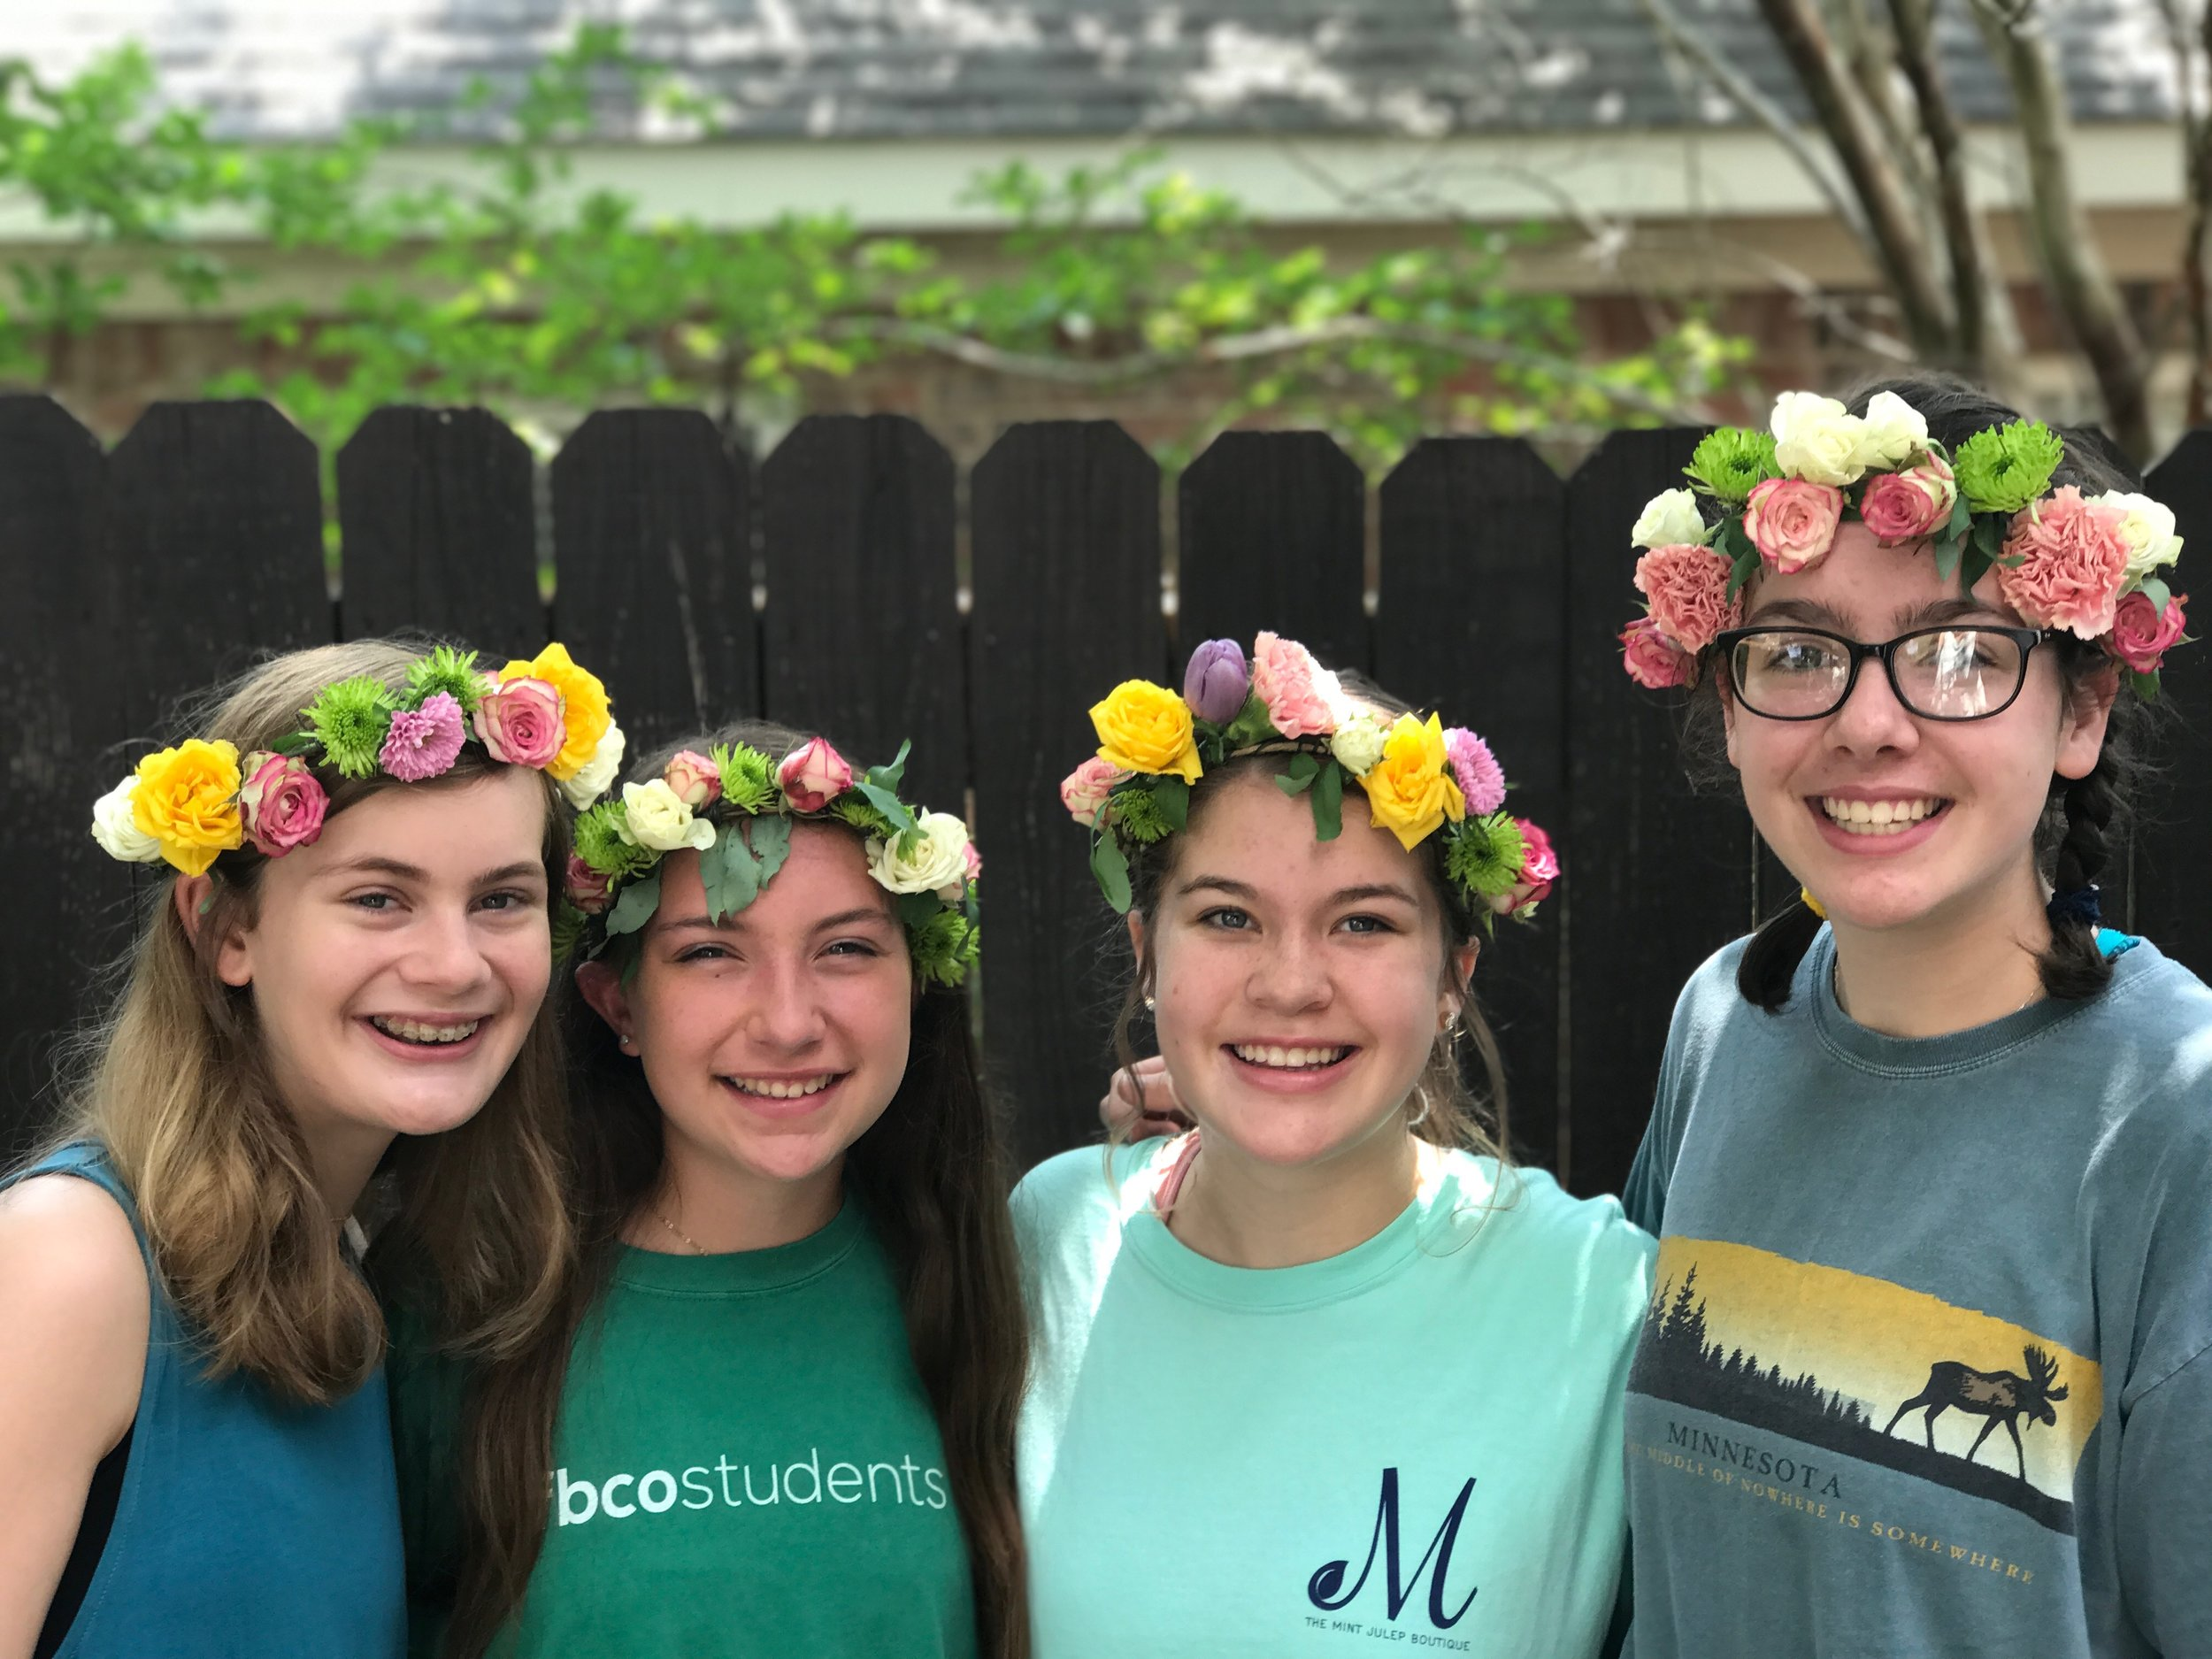 A final result of some flower crowns!